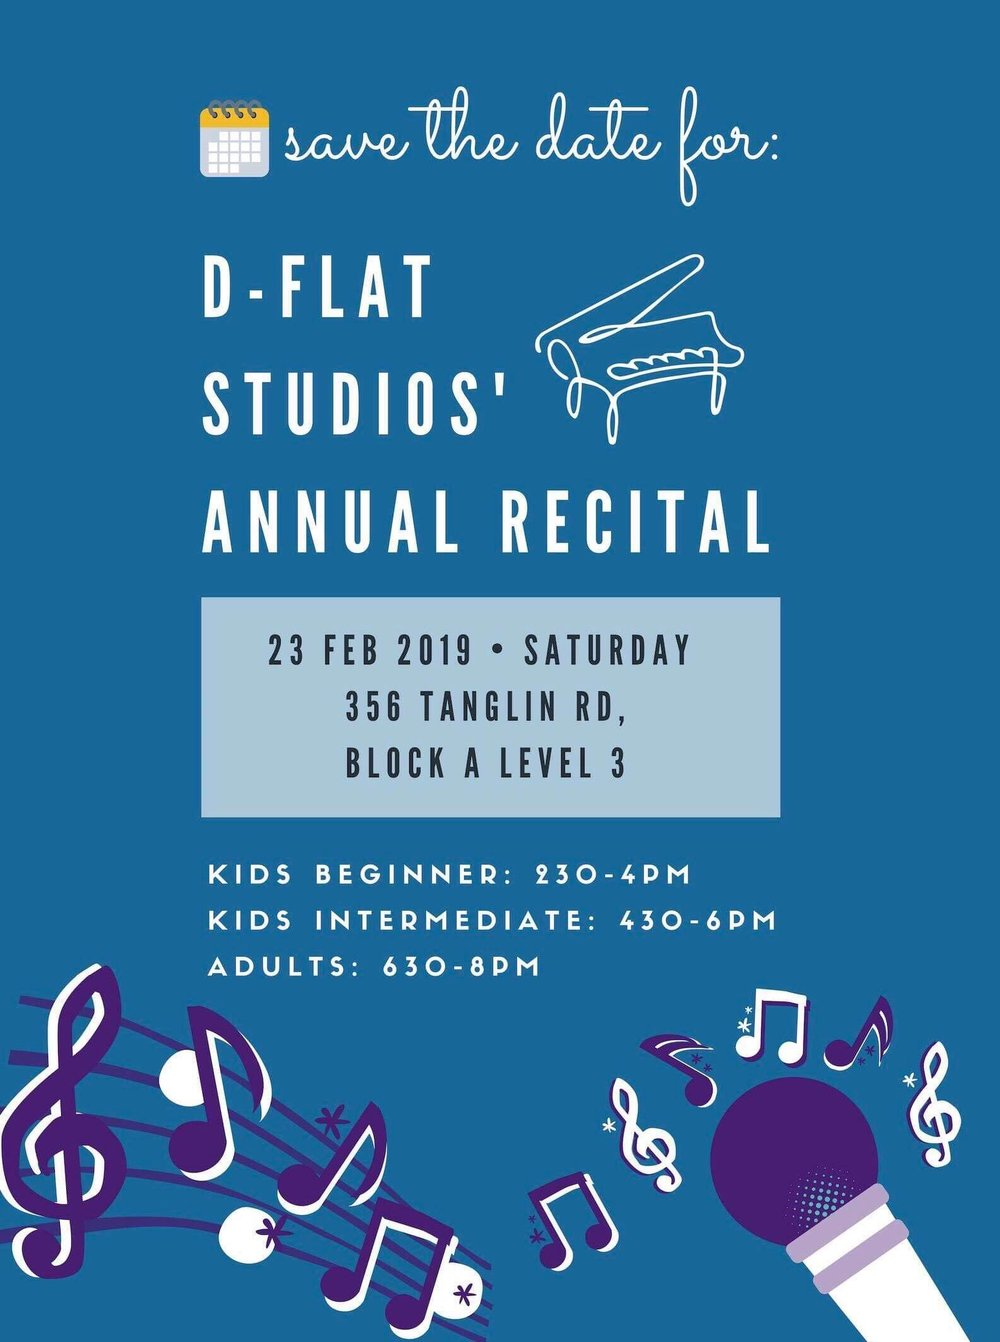 Our Annual Recital - 23rd Feb 2019